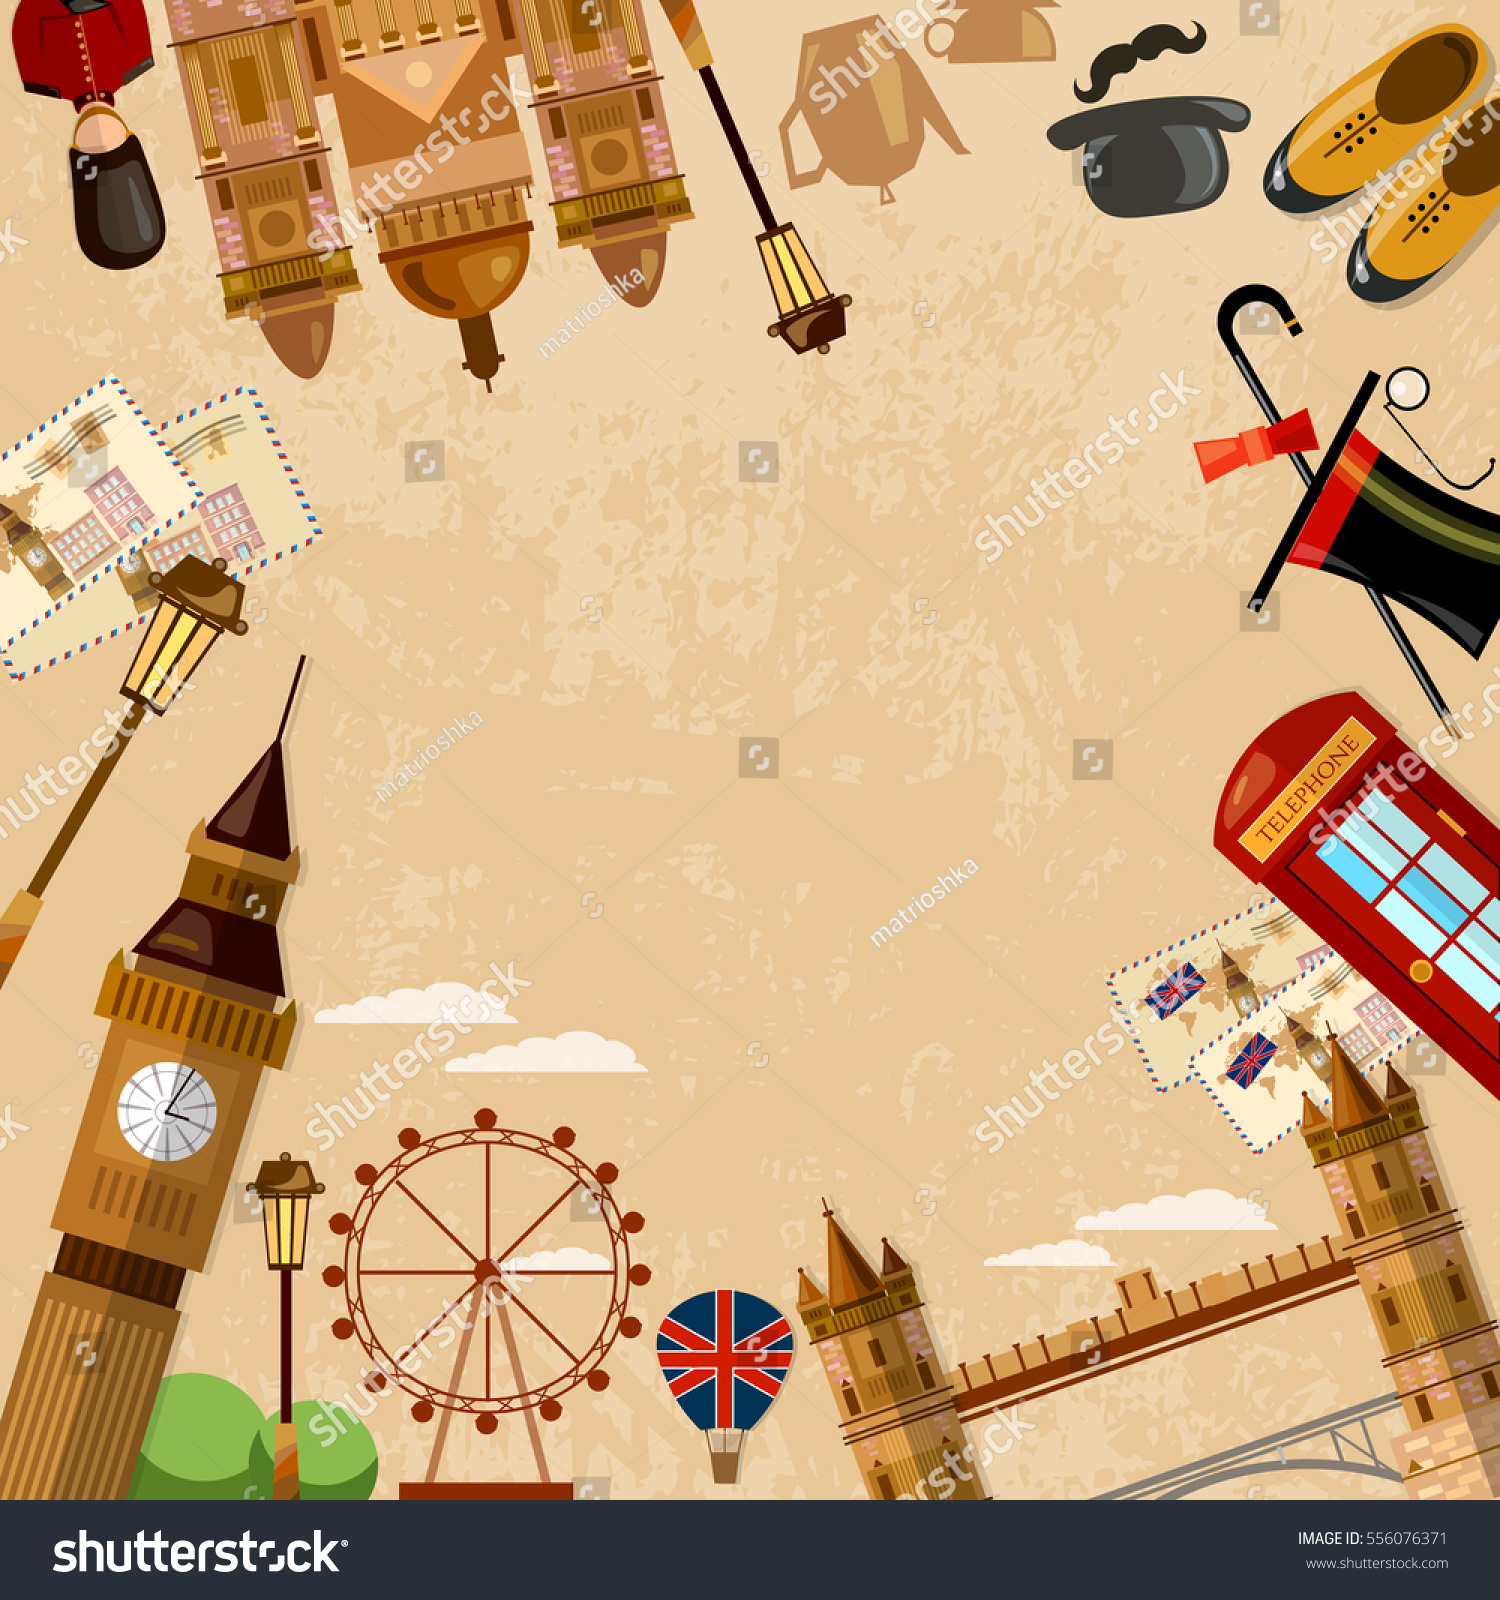 London England Travel Background Welcome Uk Stock Vector